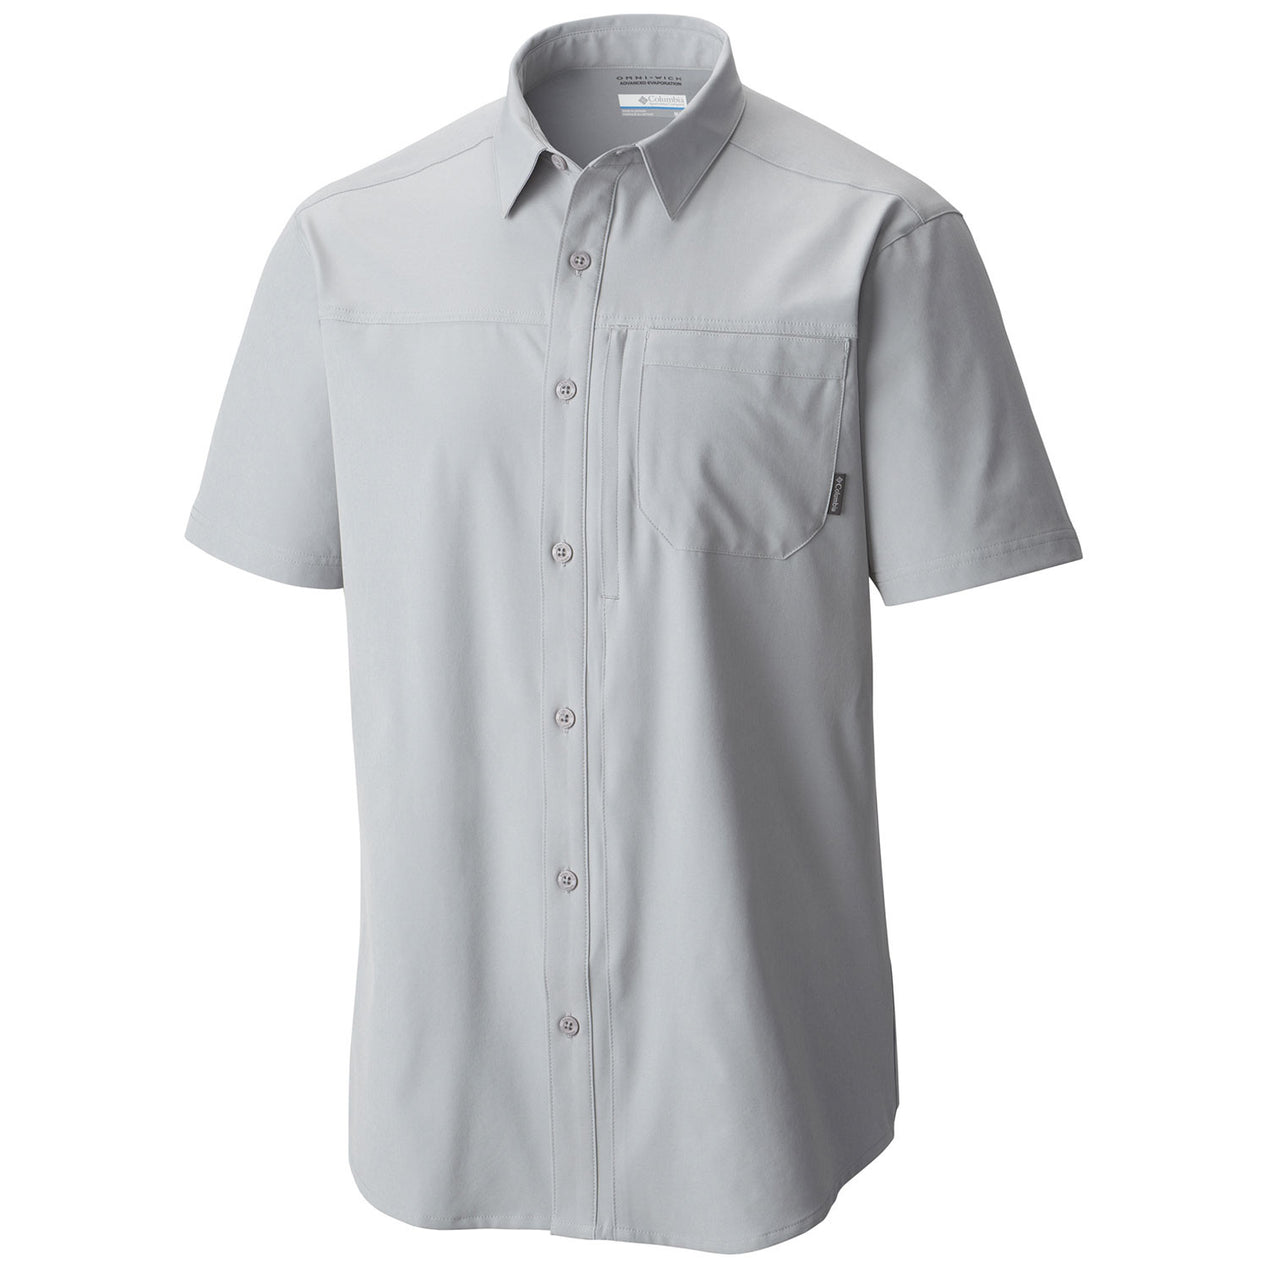 ab31c84940e Columbia Men's Global Adventure™ Iv Solid Short Sleeve Shirt ...